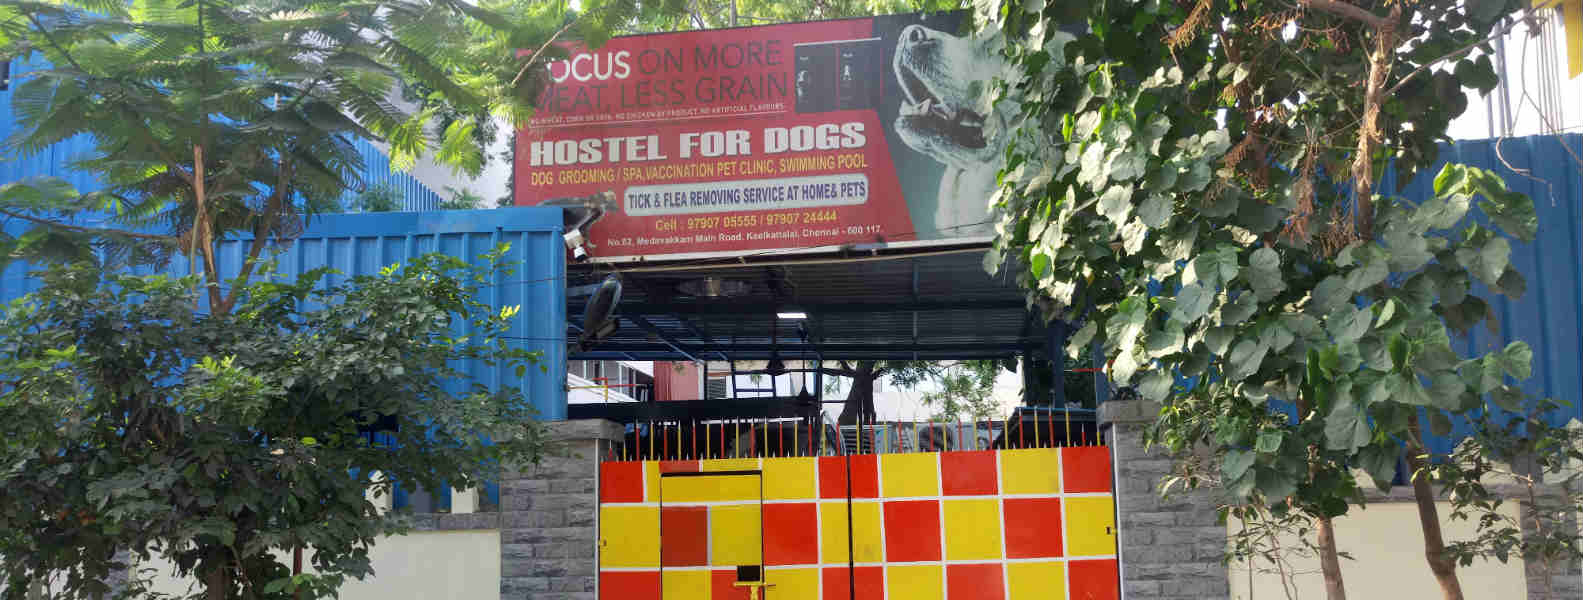 Dog care in chennai